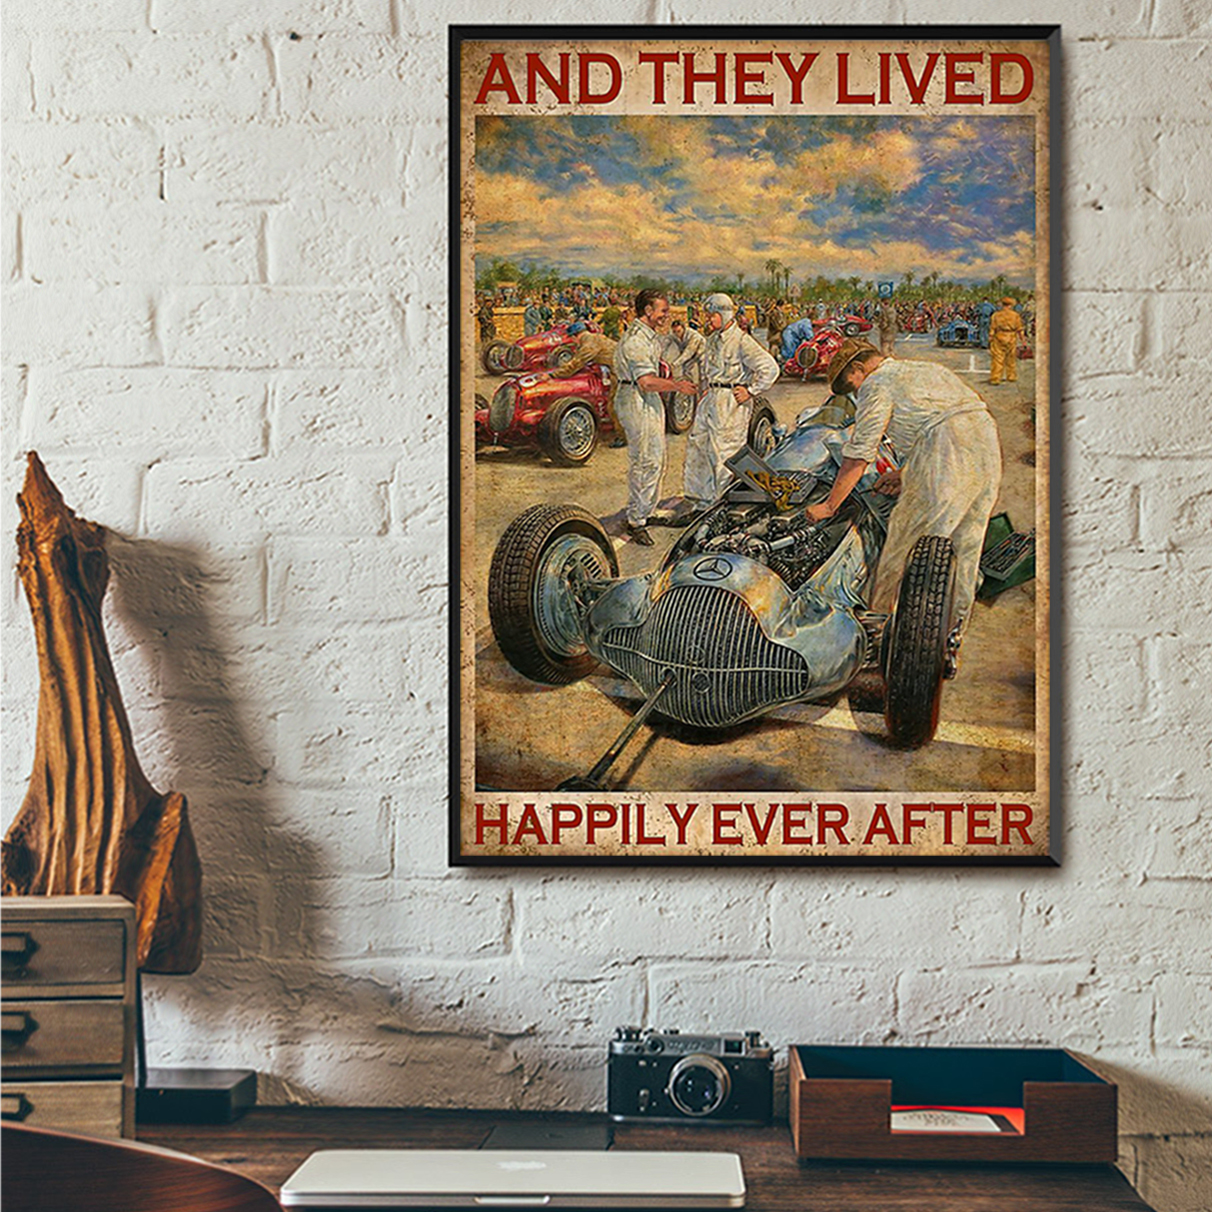 Grand prix motor and they lived happily ever after poster A2